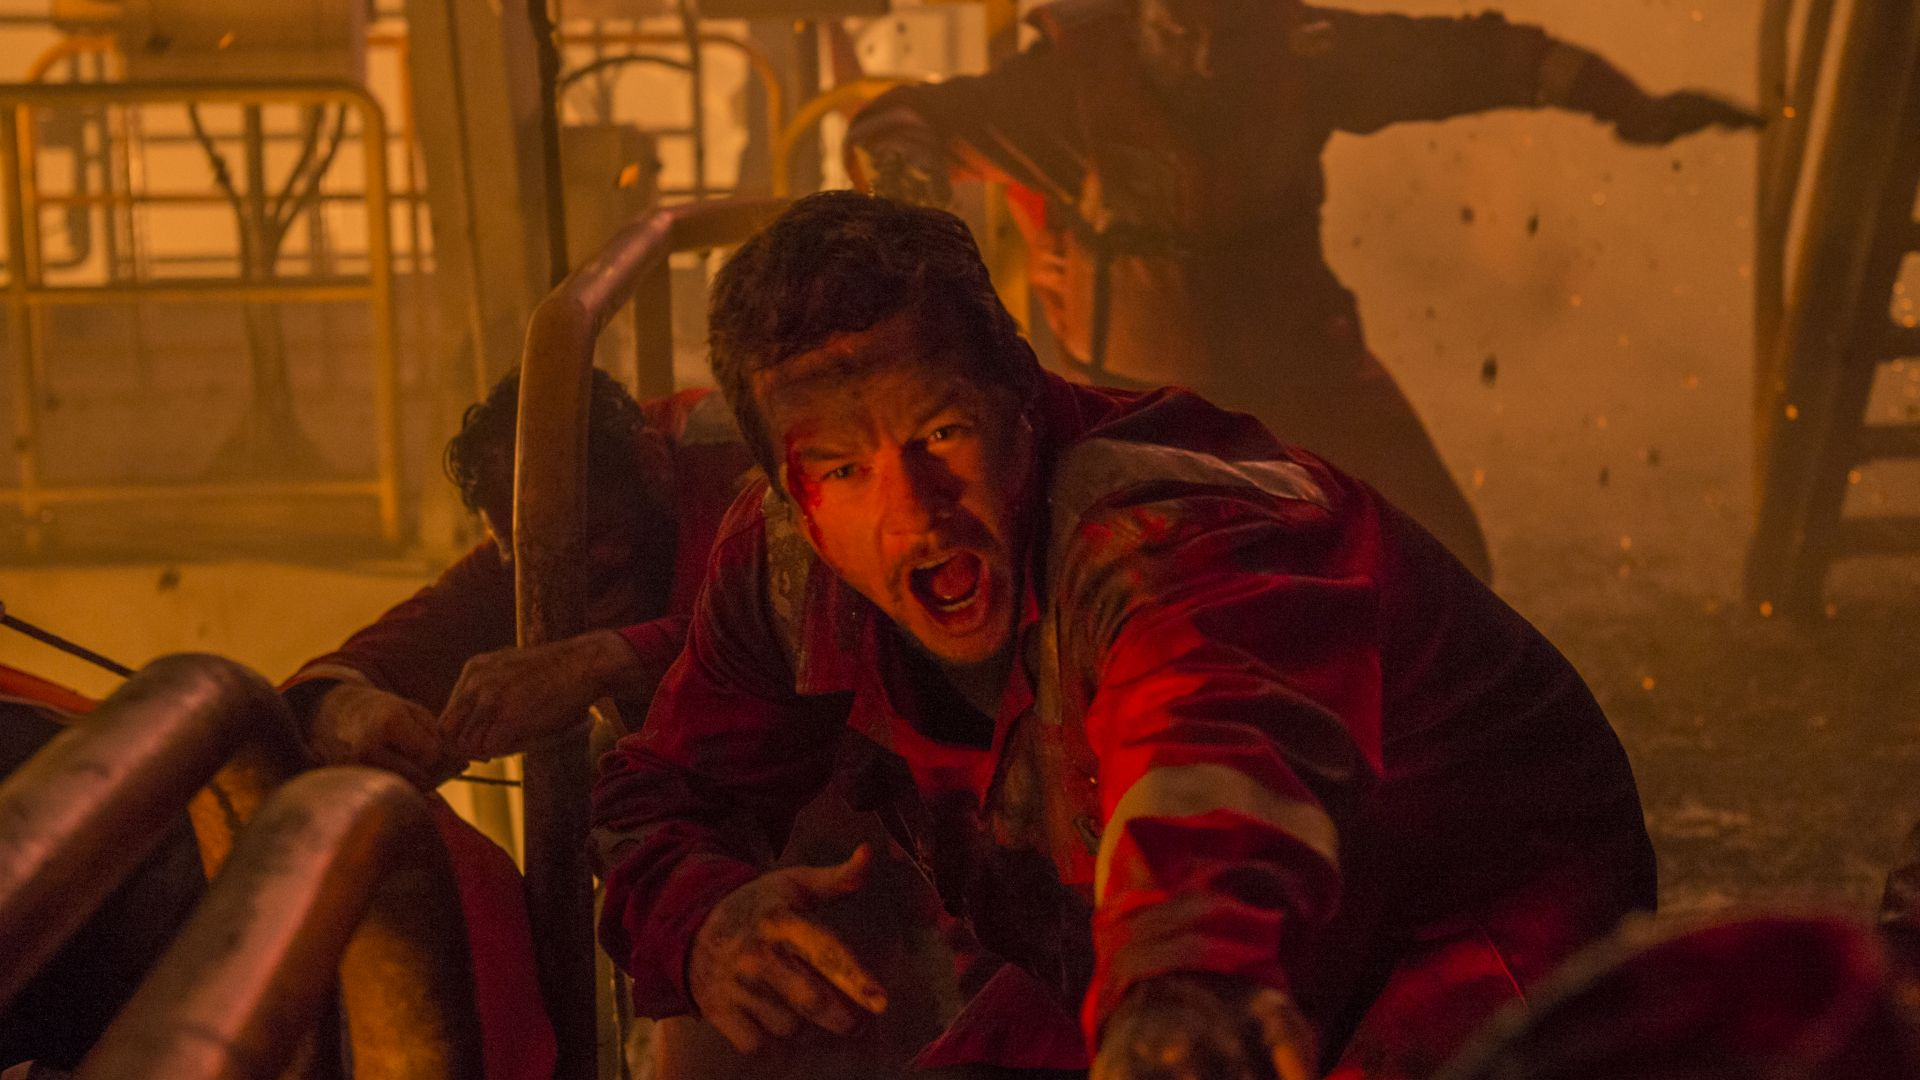 Deepwater Horizon, Mark Wahlberg, Best Movies of 2016 (horizontal)